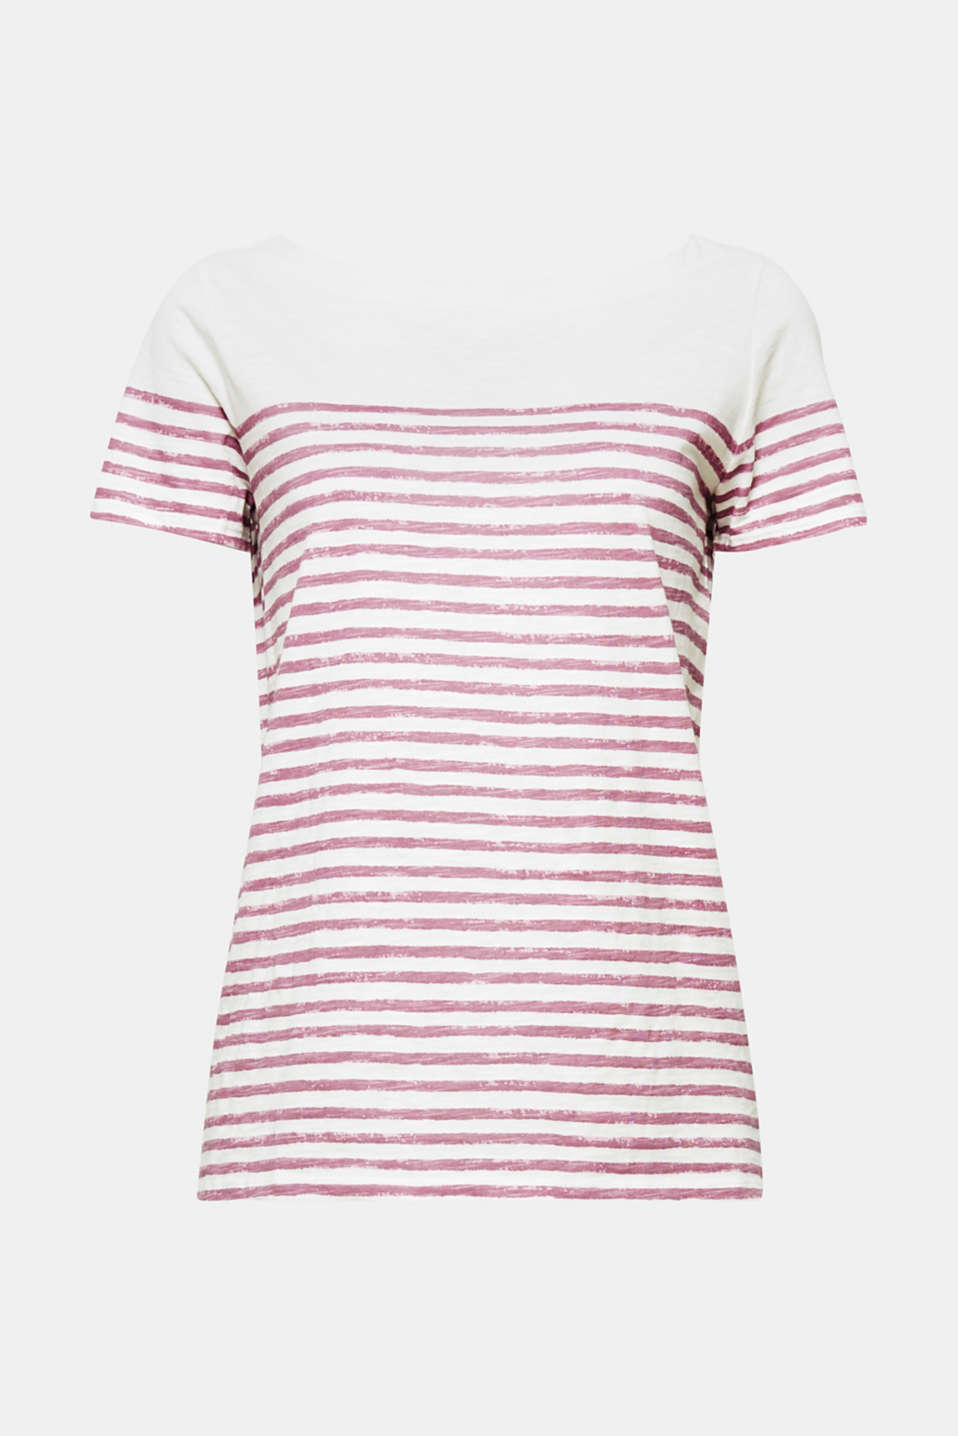 Airy jersey meets casual stripes: pure cotton slub T-shirt with a sporty, vintage print!